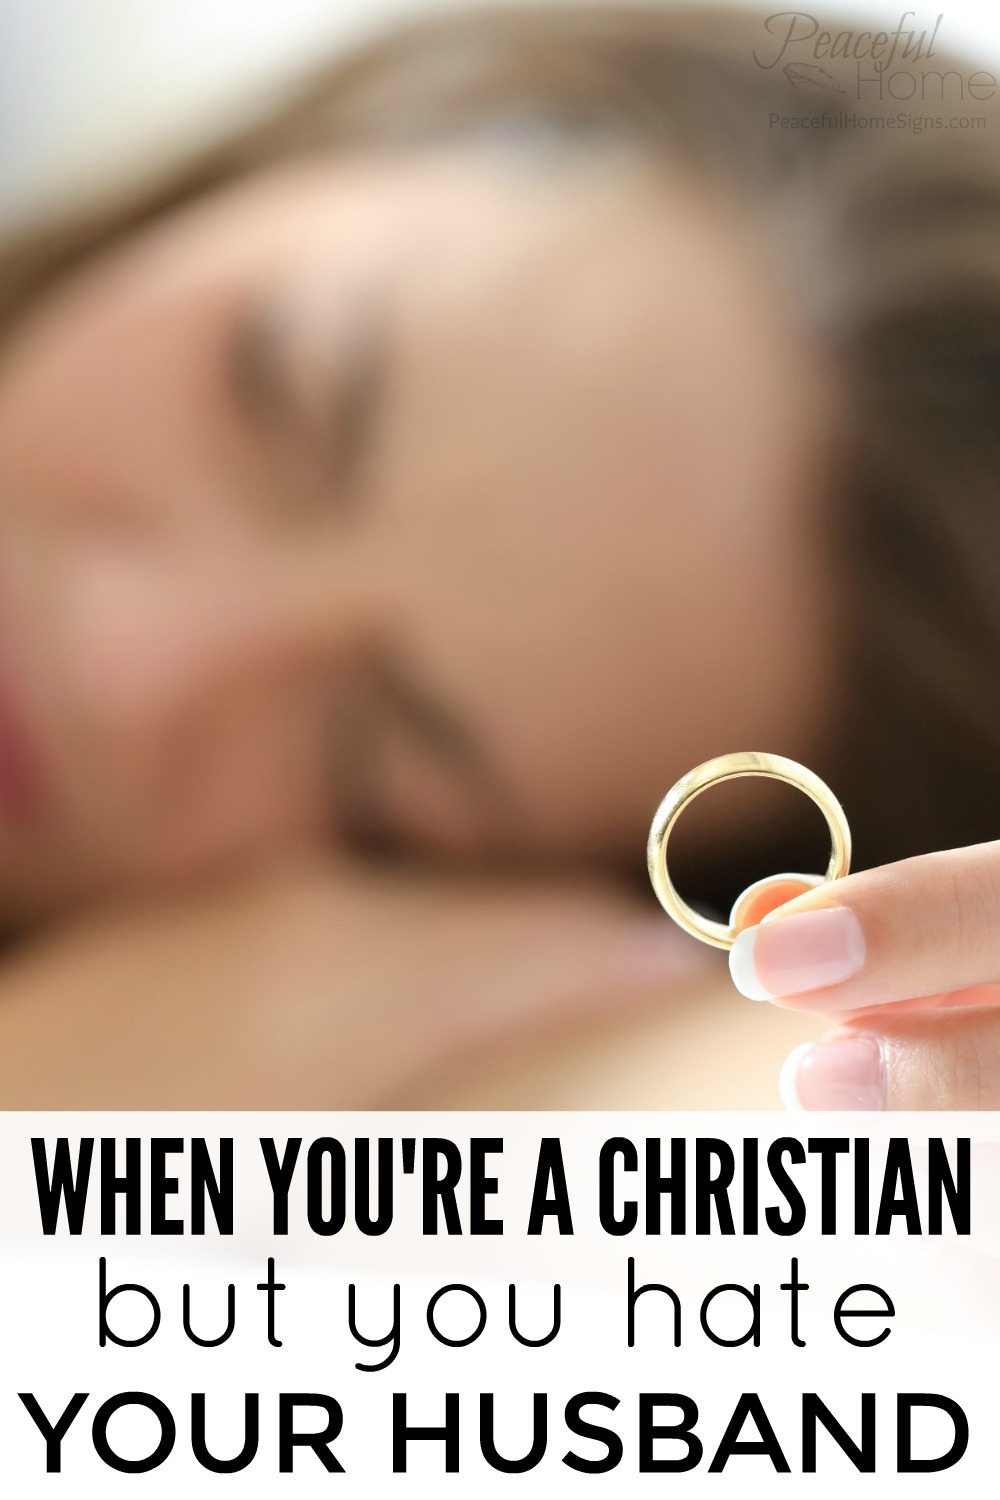 Christian marriage | faith based marriage | God Centered marriage | How to respect my husband | honor your husband, marriage help | when you're a christian but you hate your husband | Ephesians 5 Wives